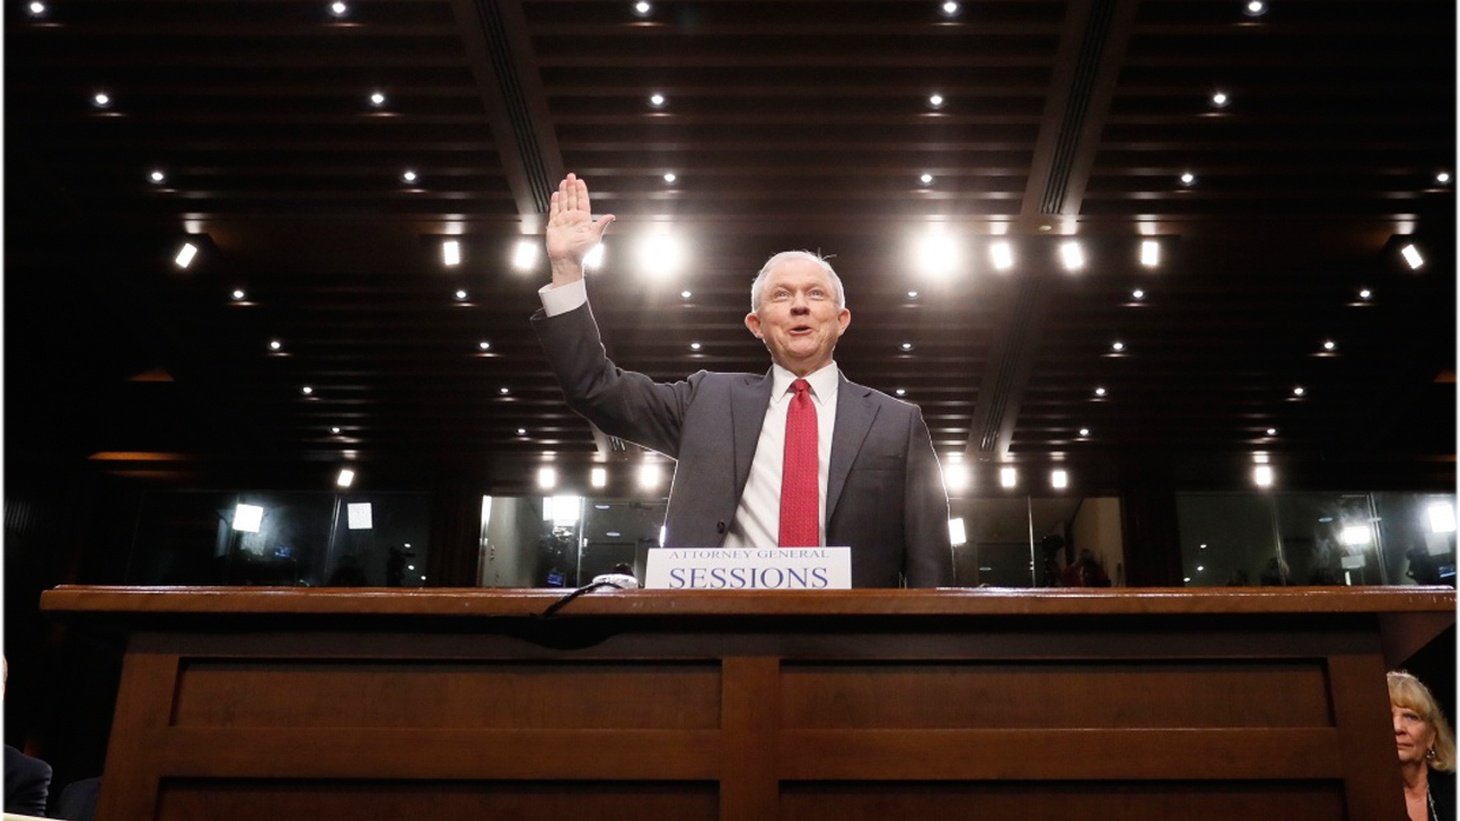 Attorney General Jeff Sessions spoke before the Senate Intelligence Committee Tuesday. He was supposed to speak before the House Appropriations Committee, but he left that to his Deputy Attorney General, Rod Rosenstein. There are questions about the Russia investigation, and reports that President Trump might fire special counsel Robert Mueller.